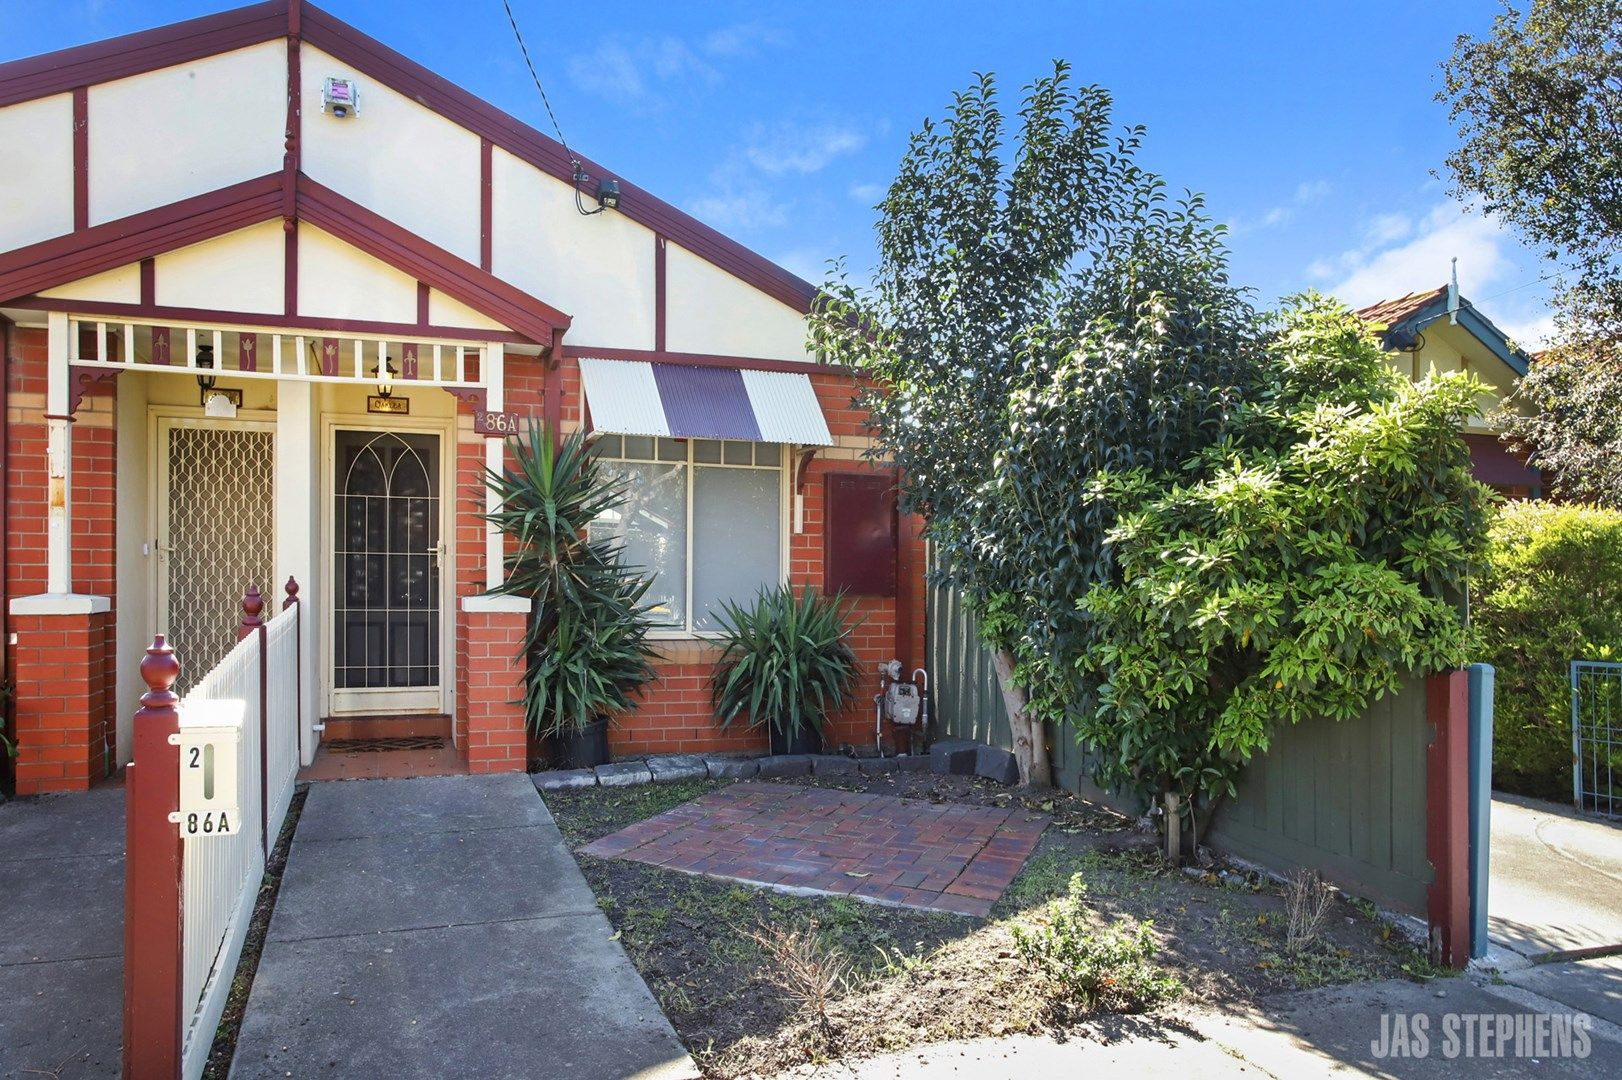 2/86A Alma Street, West Footscray VIC 3012, Image 0